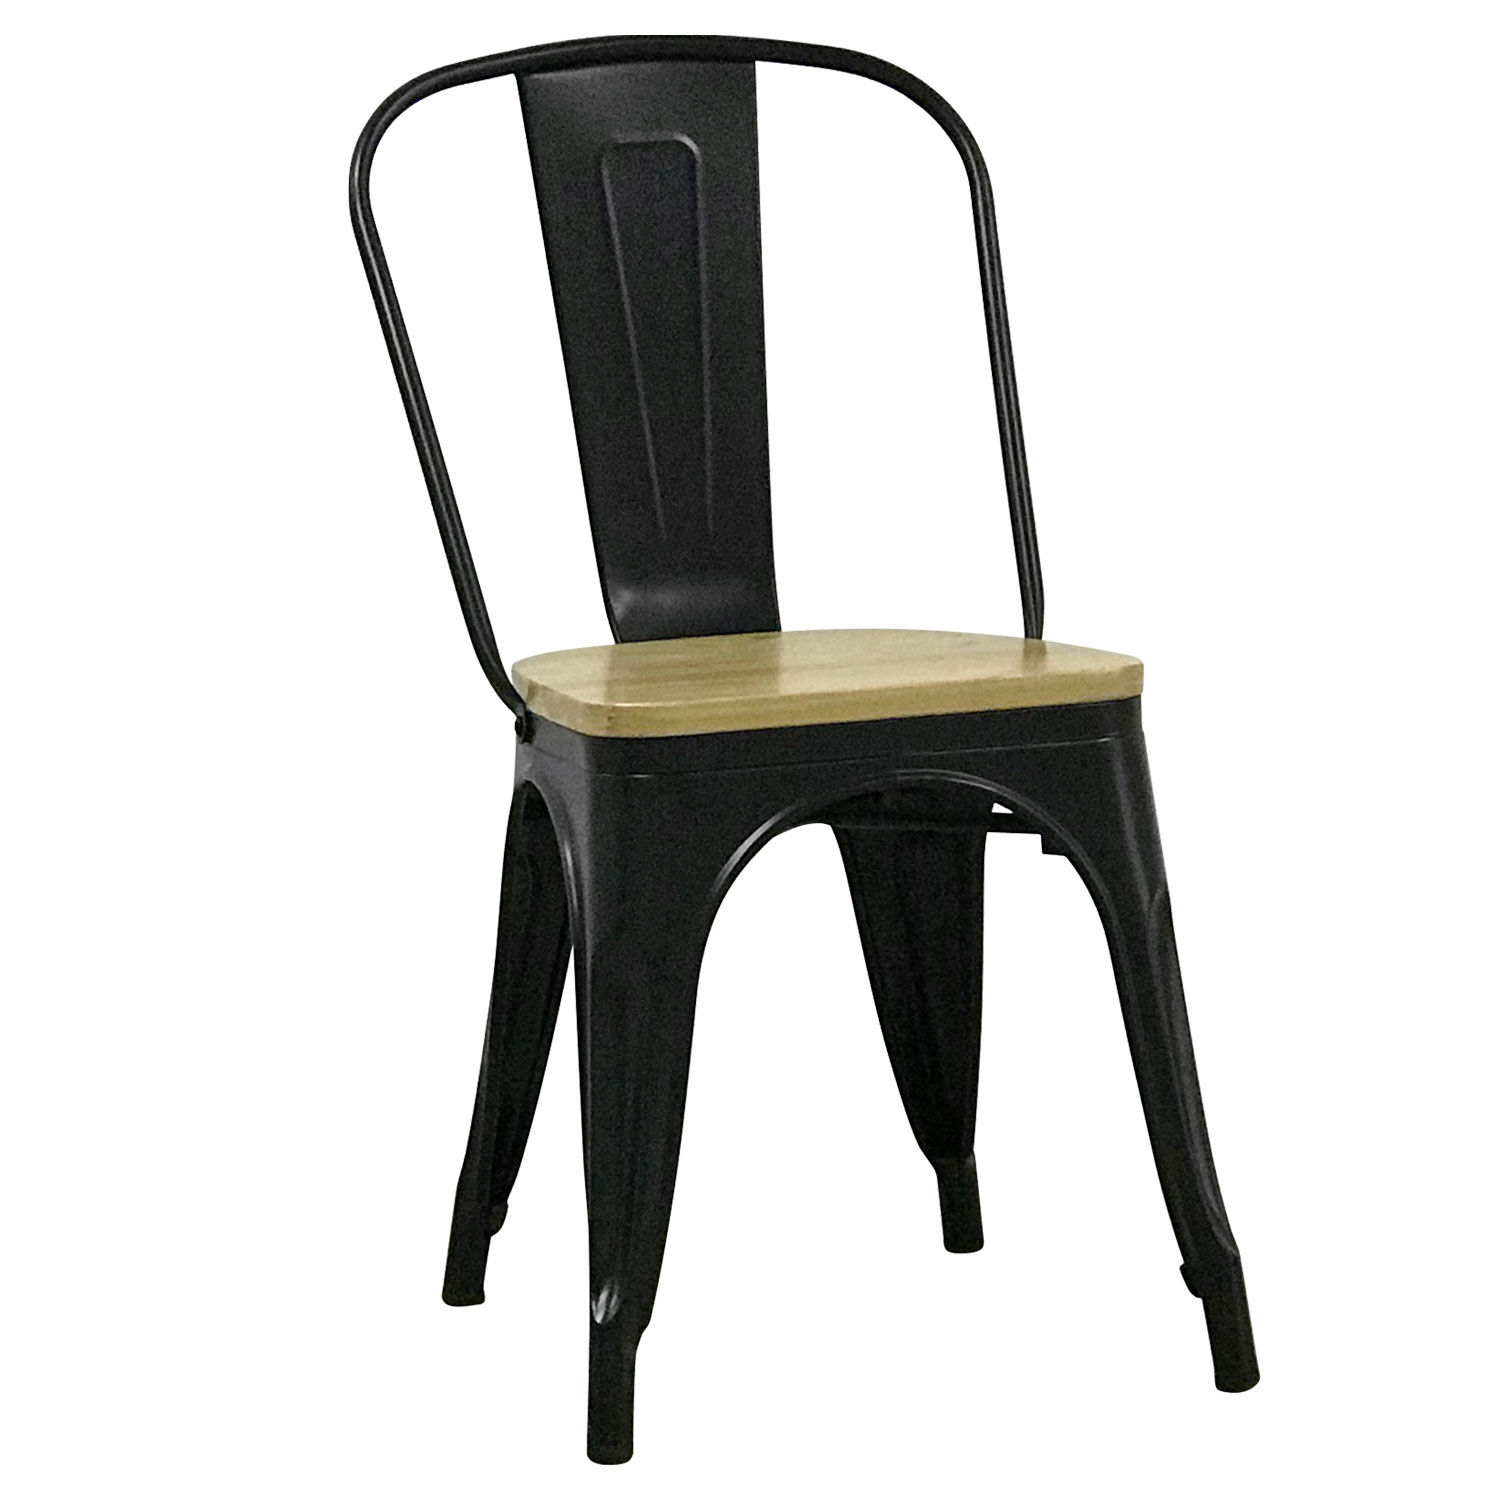 SILLA TOLIX NEGRA NATURAL WOOD